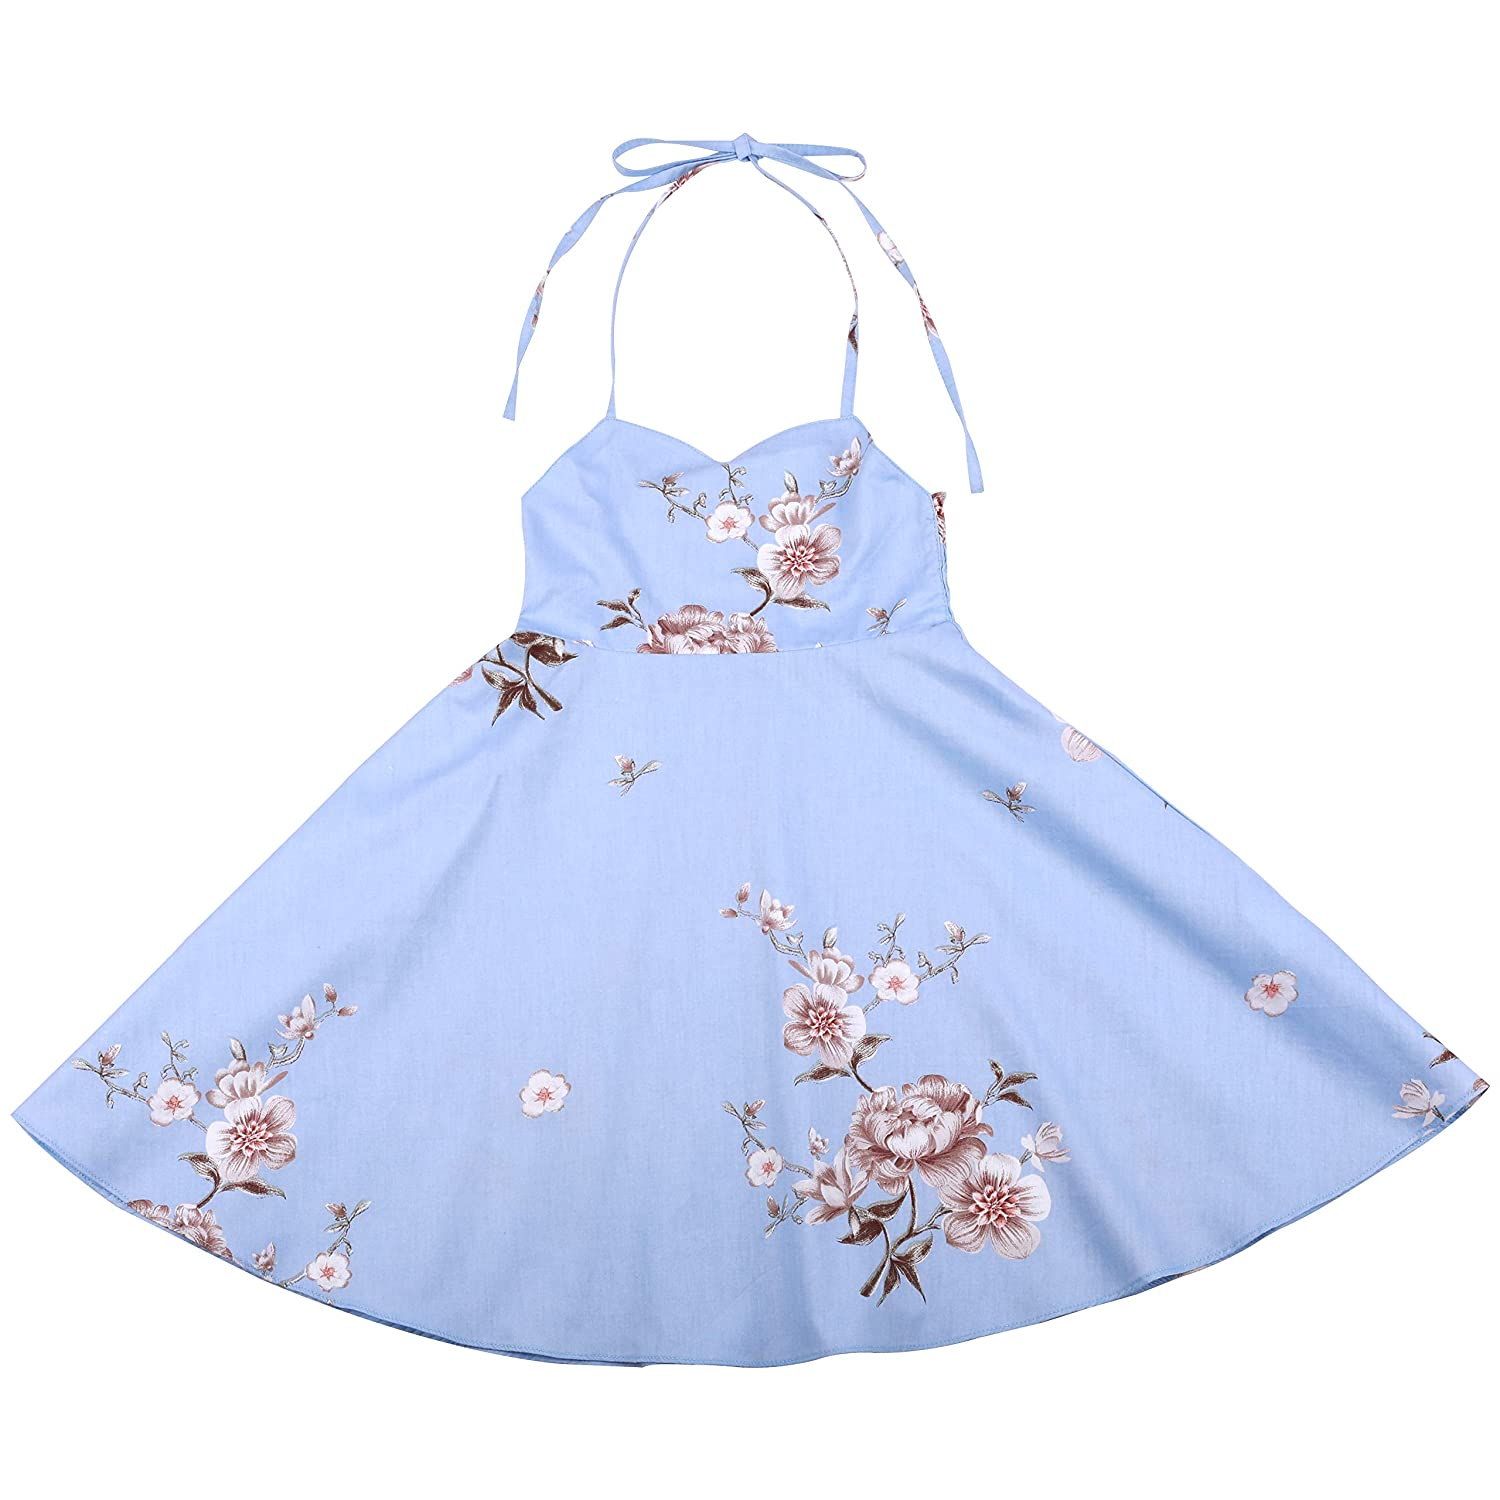 ad7a7463b569e Flofallzique Vintage Floral Easter Dress for 1-12 Y Girls Birthday Wedding  Party Sundress for Toddler